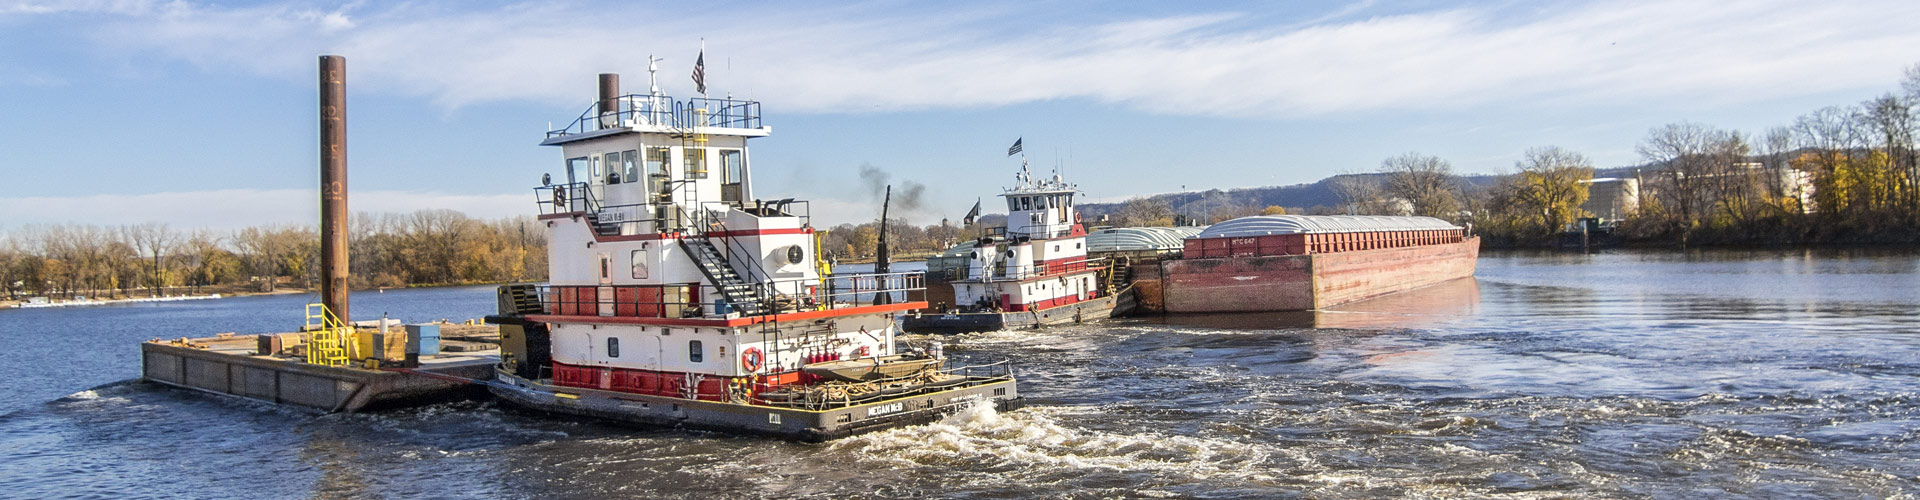 switching and fleeting, fleeting, barge transportation, inland waterway services, inland river services, inland river towing, towboats, Upper Mississippi river service, barge service, harbor management